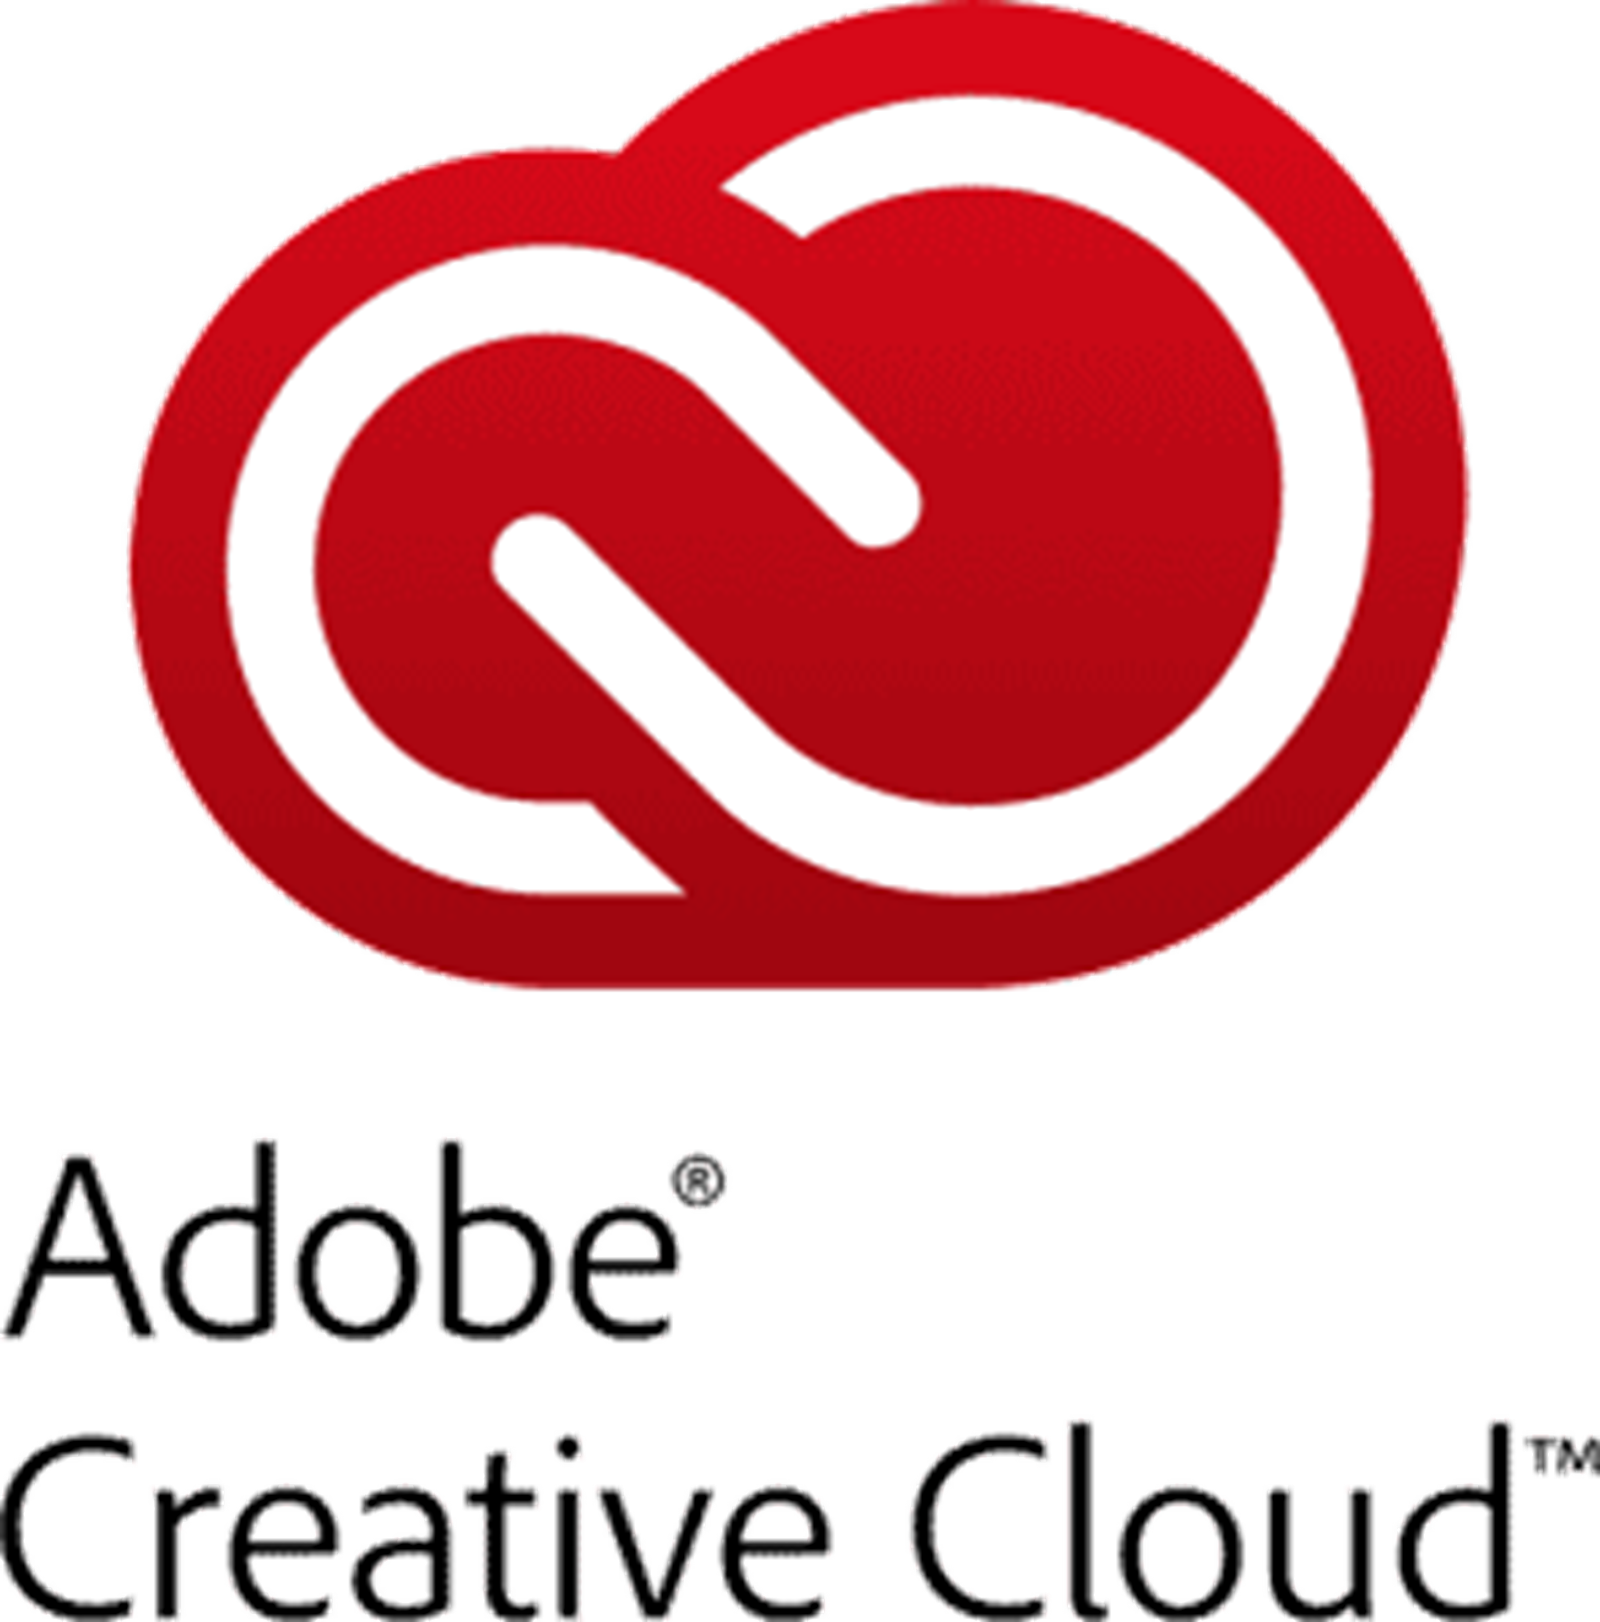 adobe-creative-cloud-296x300.png (1)